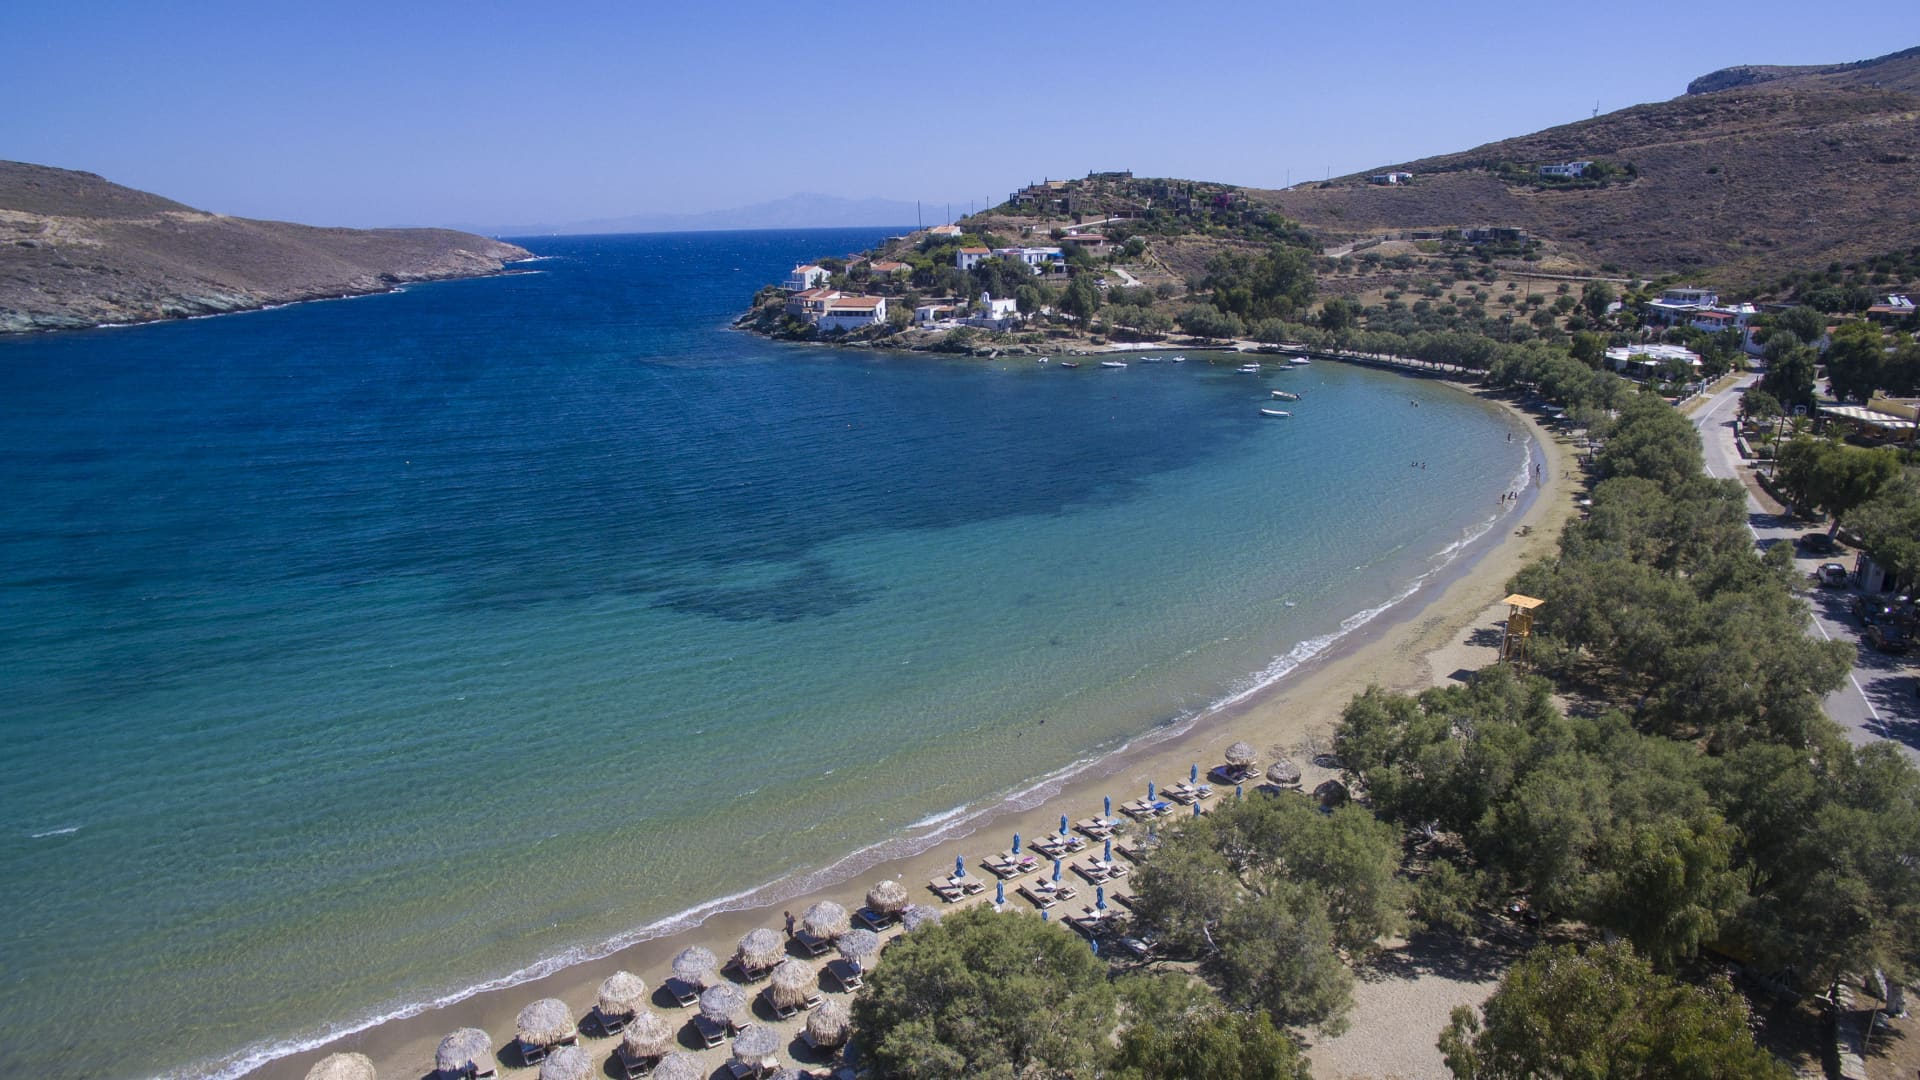 Aerial images of Kea island also known as Gia or Tzia, Zea, and, in antiquity, Keos, is a Greek island in the Cyclades archipelago in the Aegean Sea. Kea is part of the Kea-Kythnos regional unit.